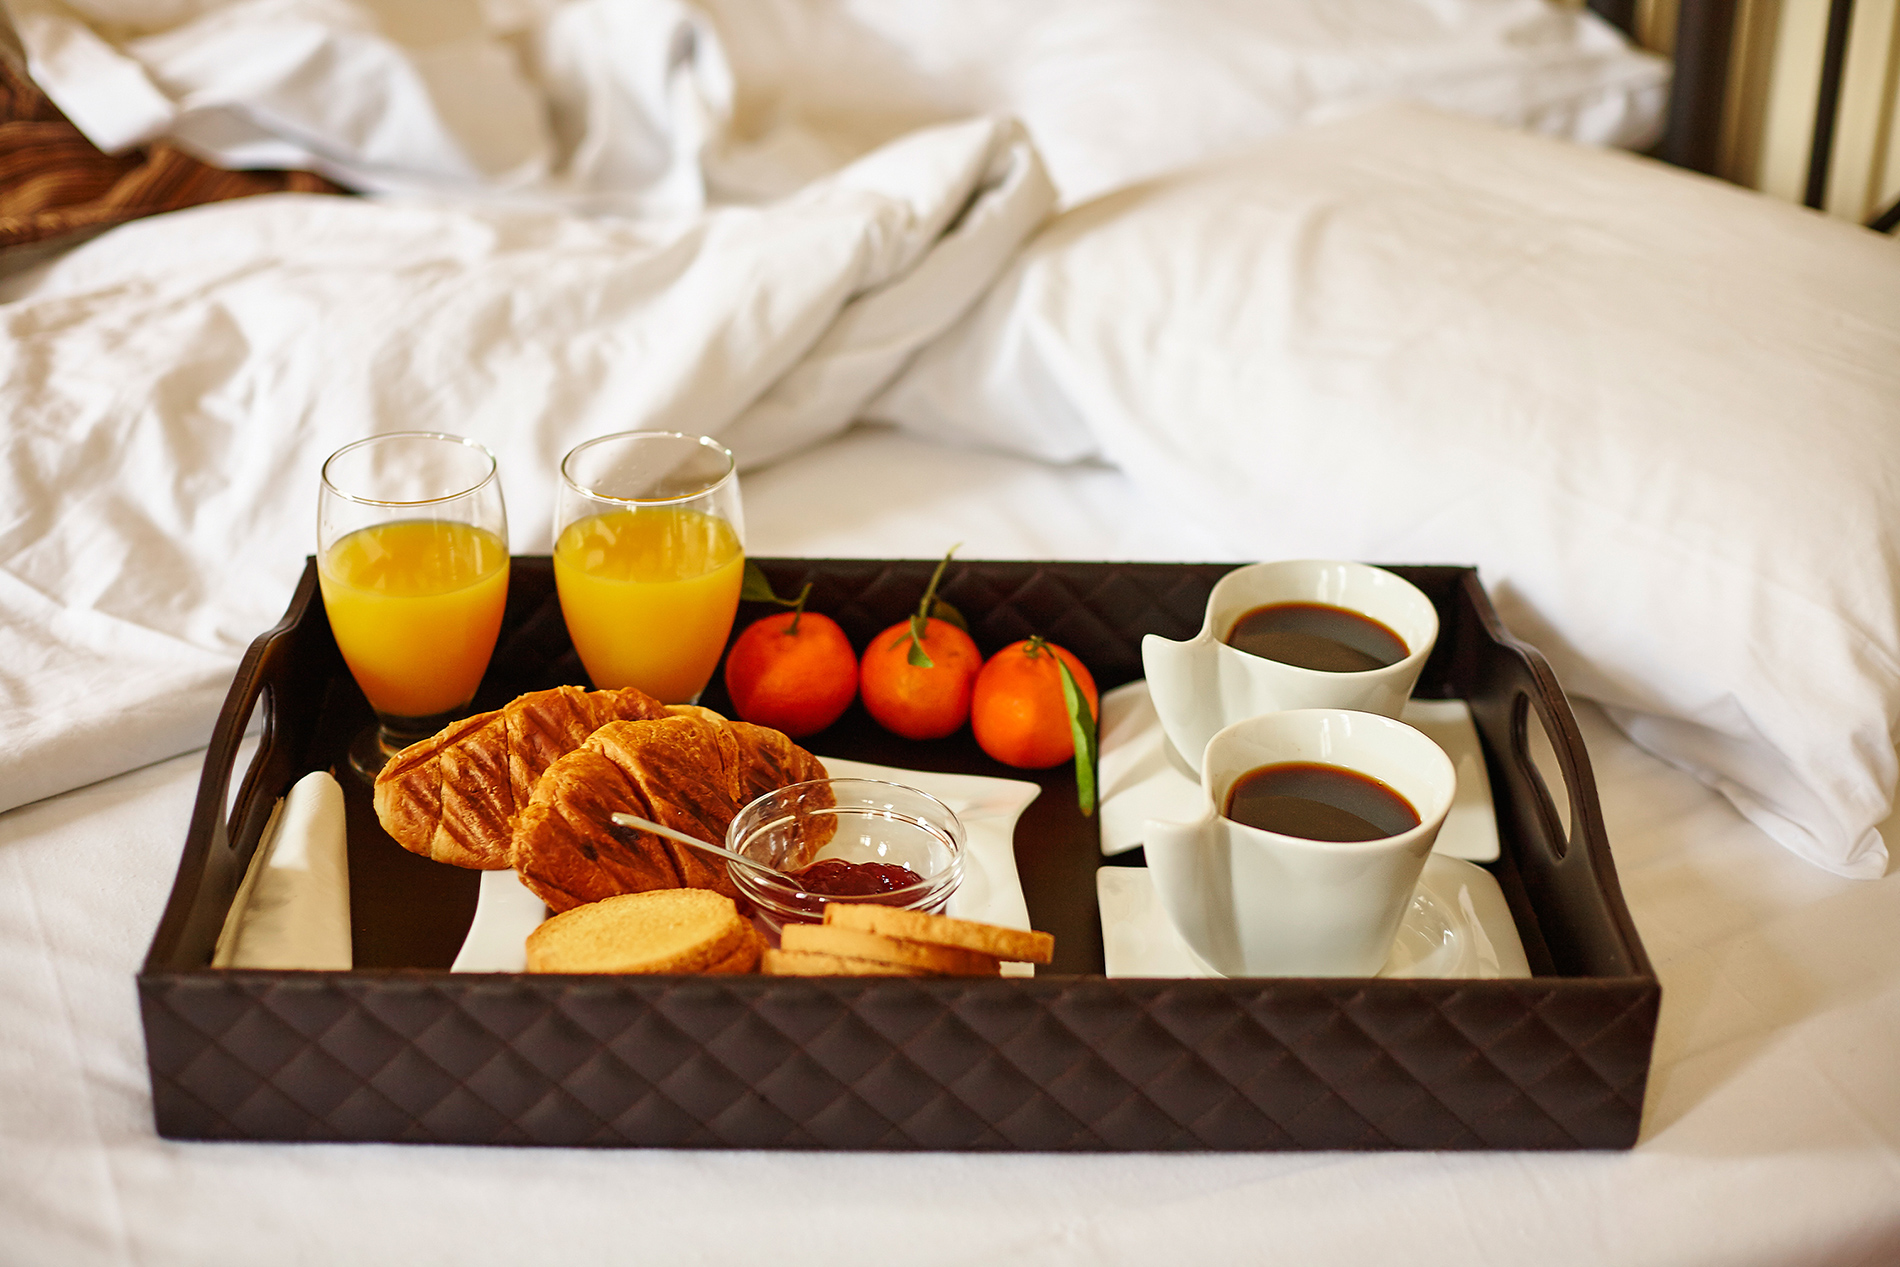 tray of food on bed